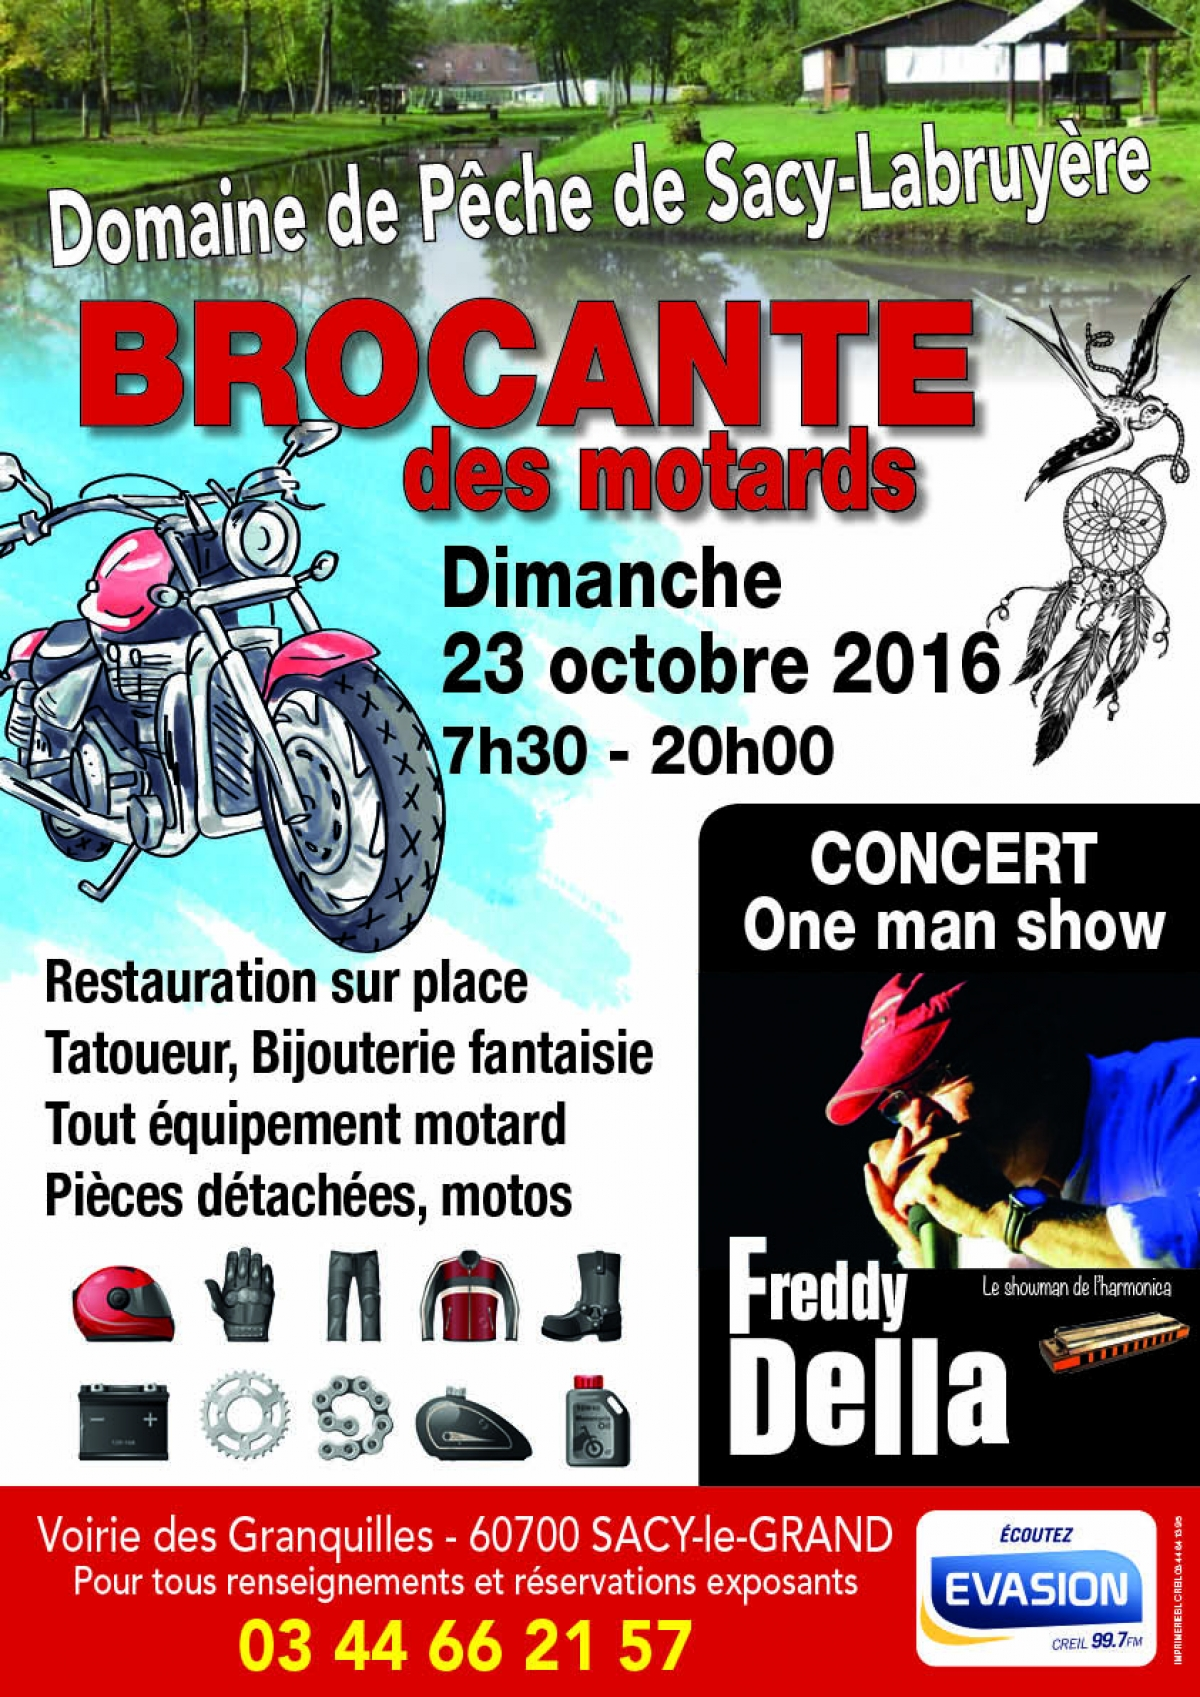 la brocante des motards l 39 agenda sorties evasion evasion. Black Bedroom Furniture Sets. Home Design Ideas